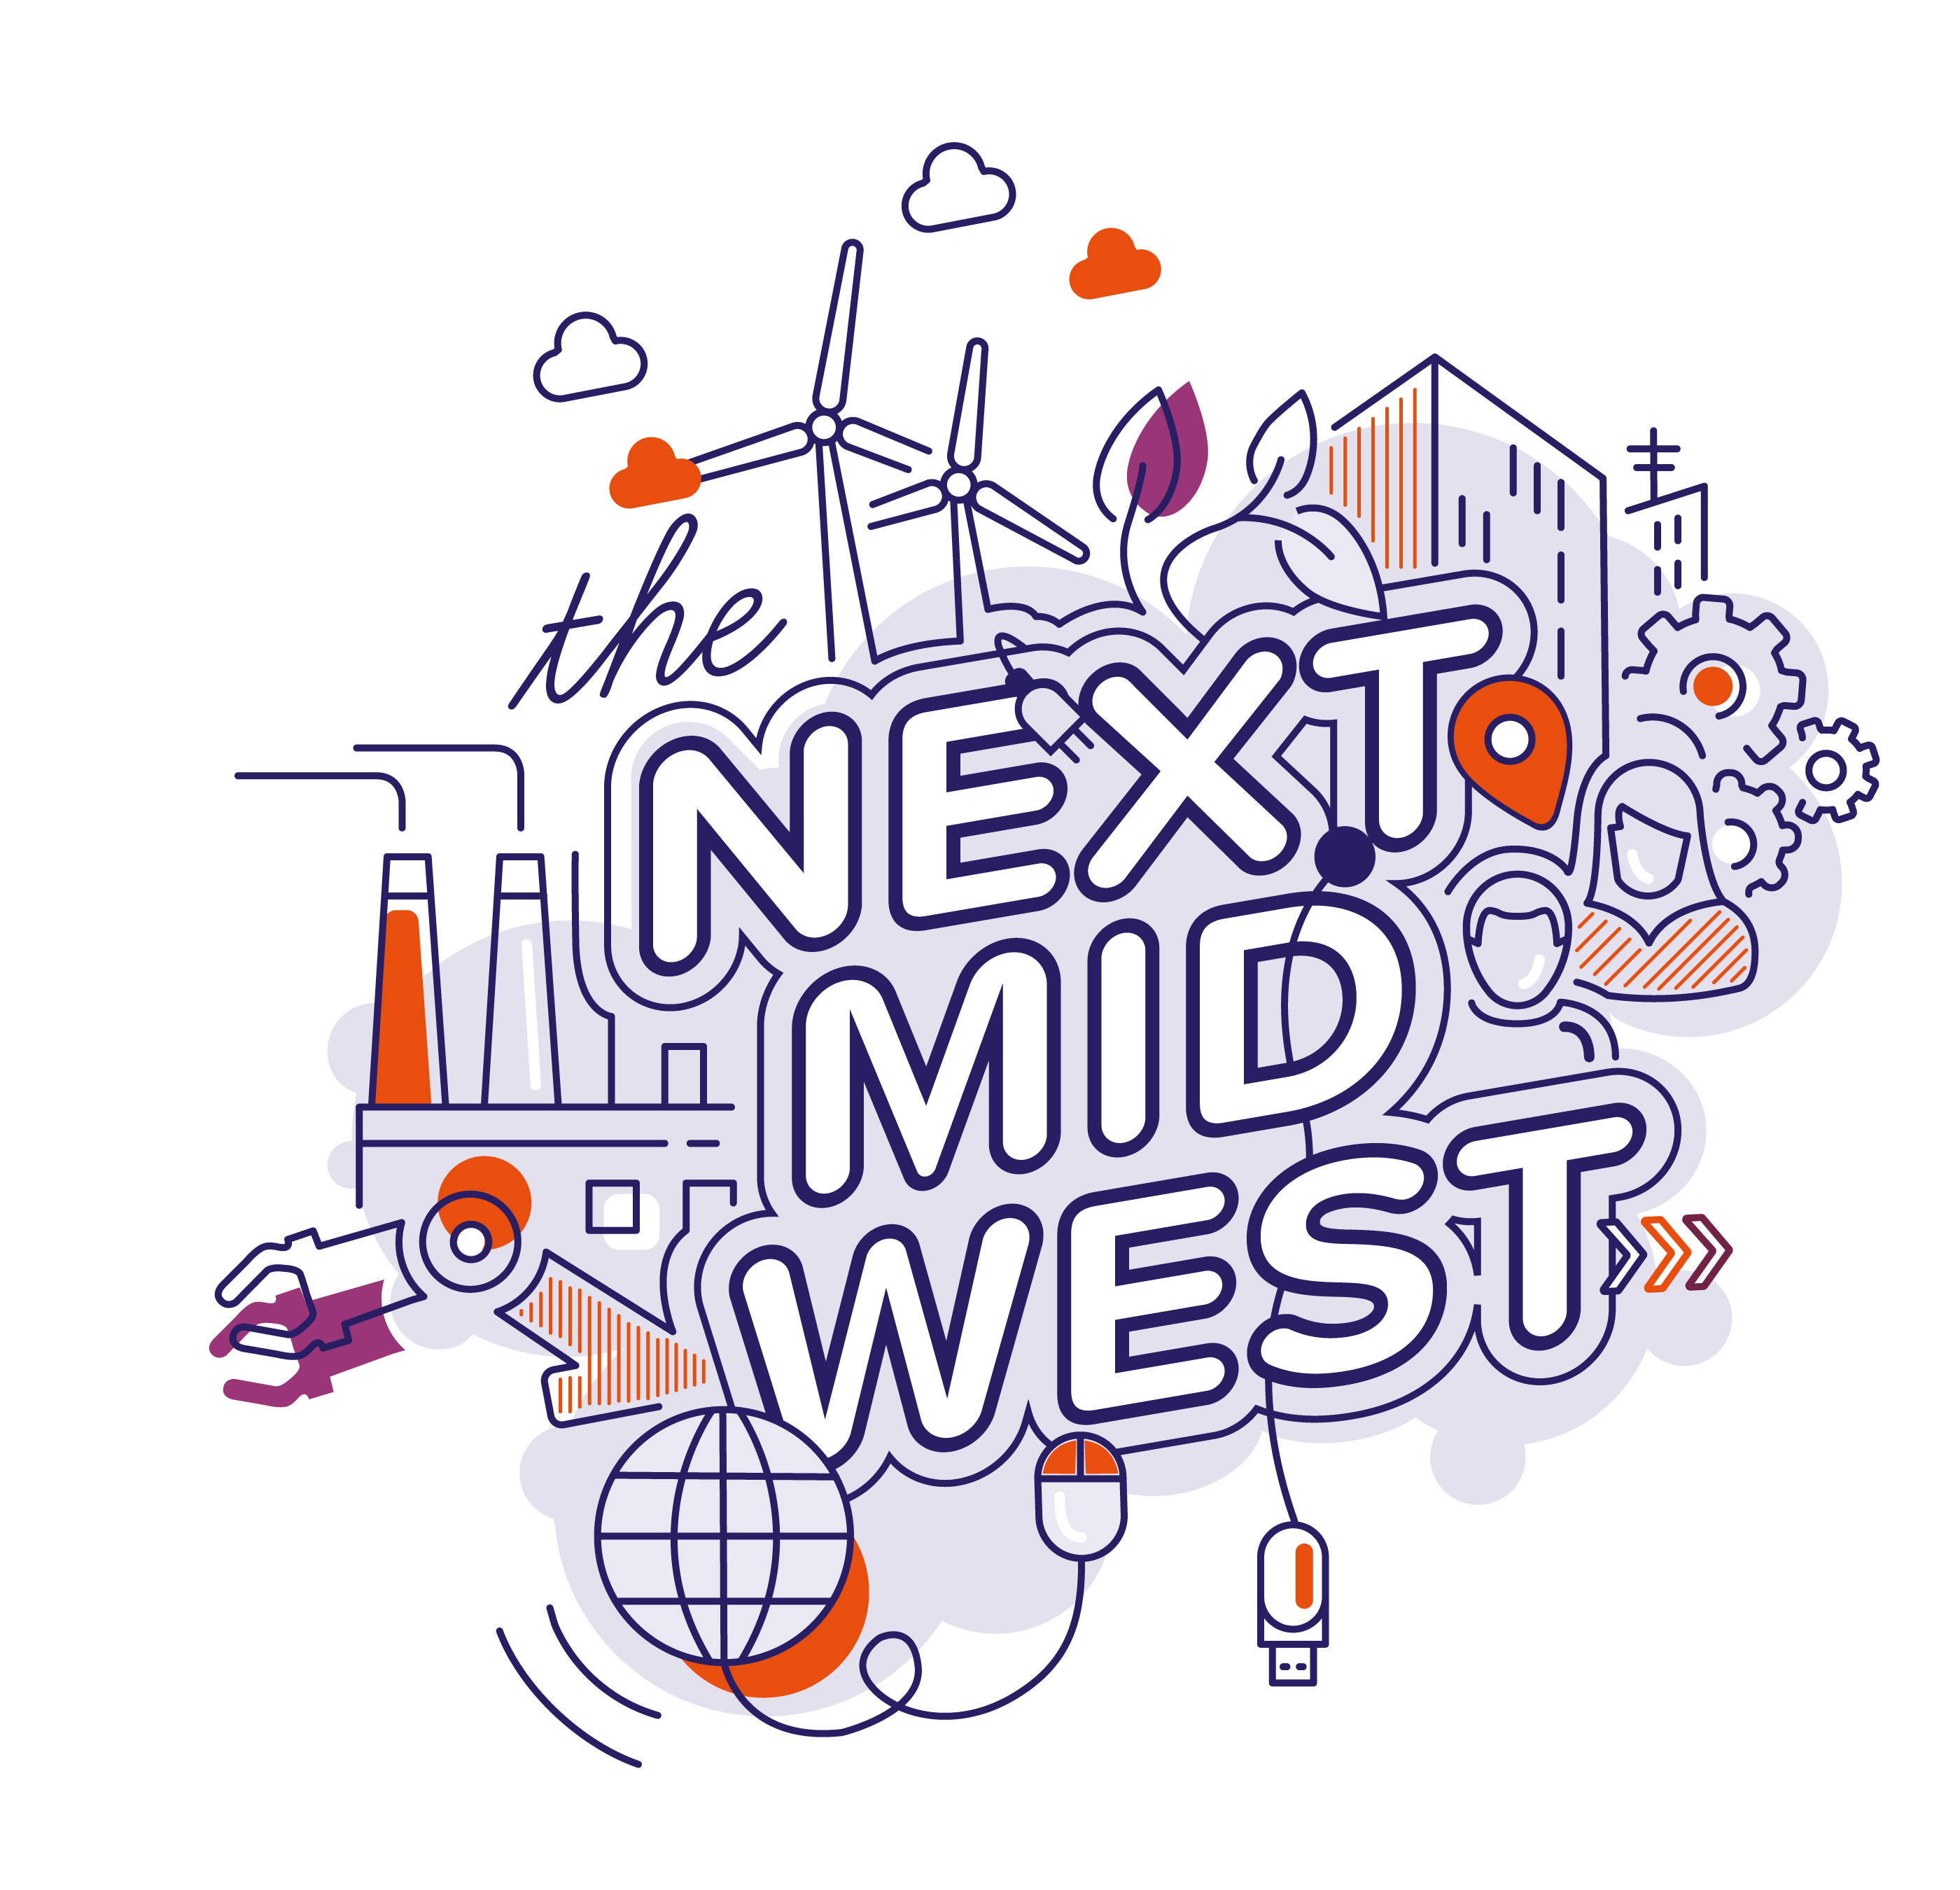 20180619-The-next-midwest-beeld-DEF.png